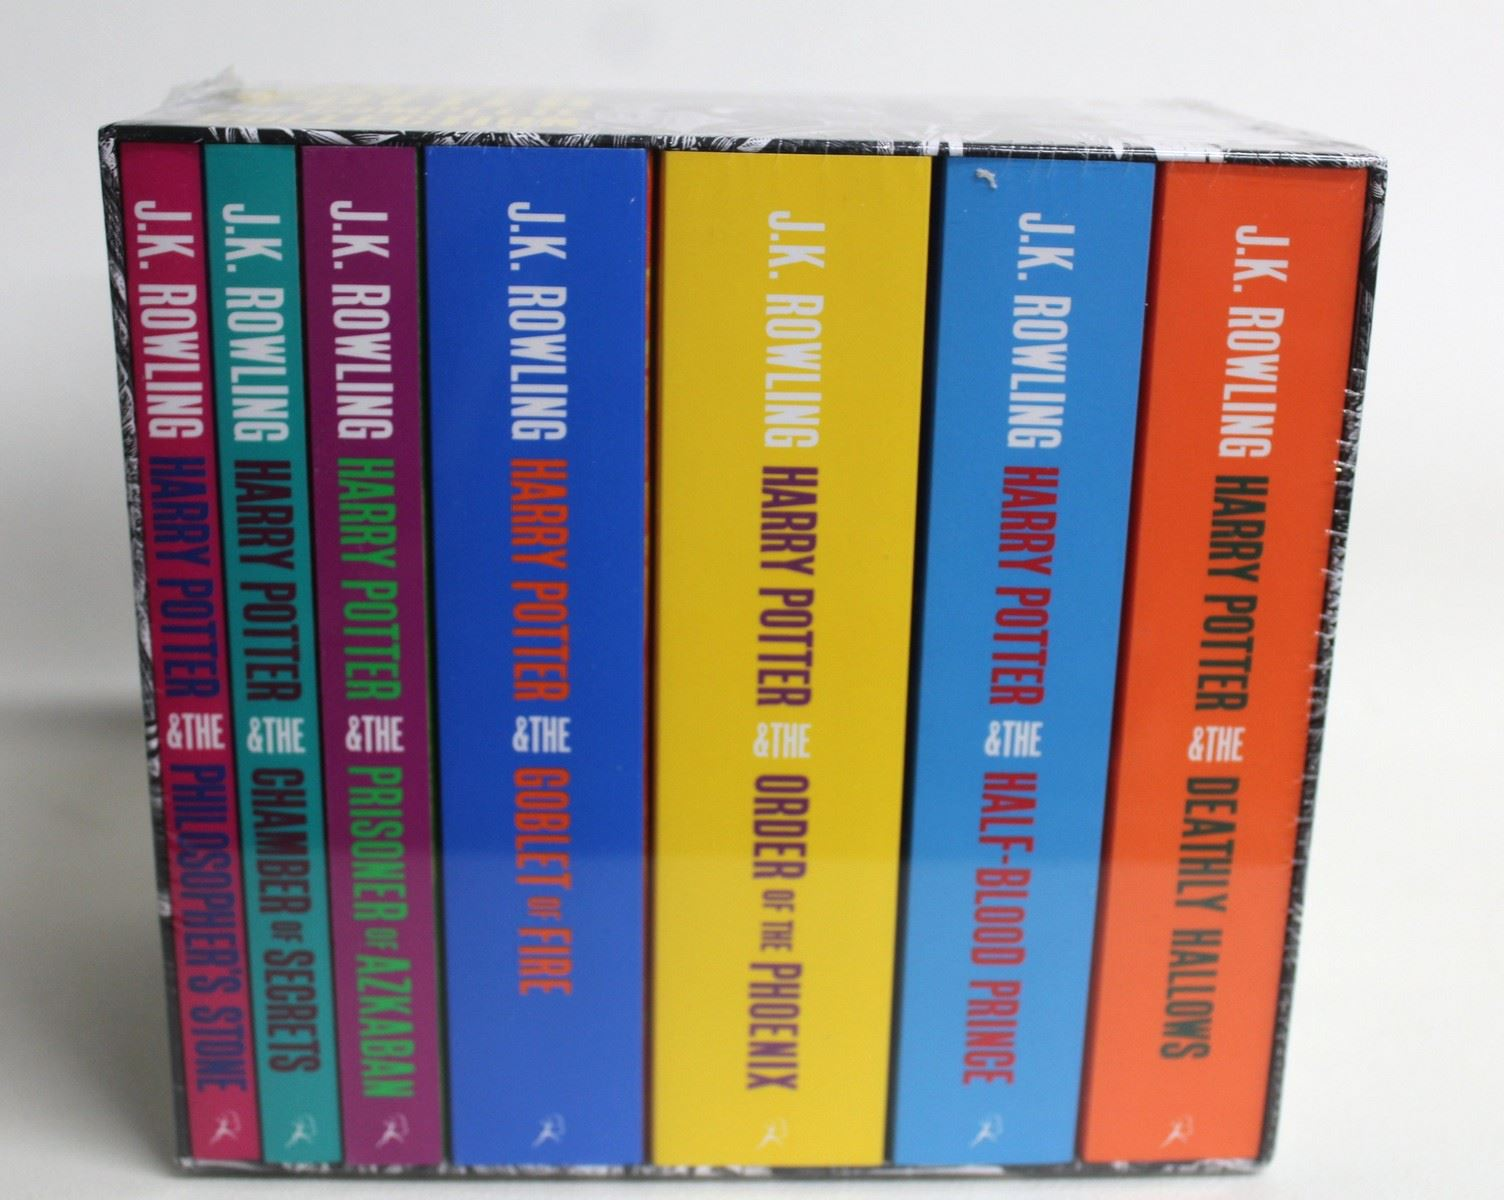 harry potter adult edition set eBay